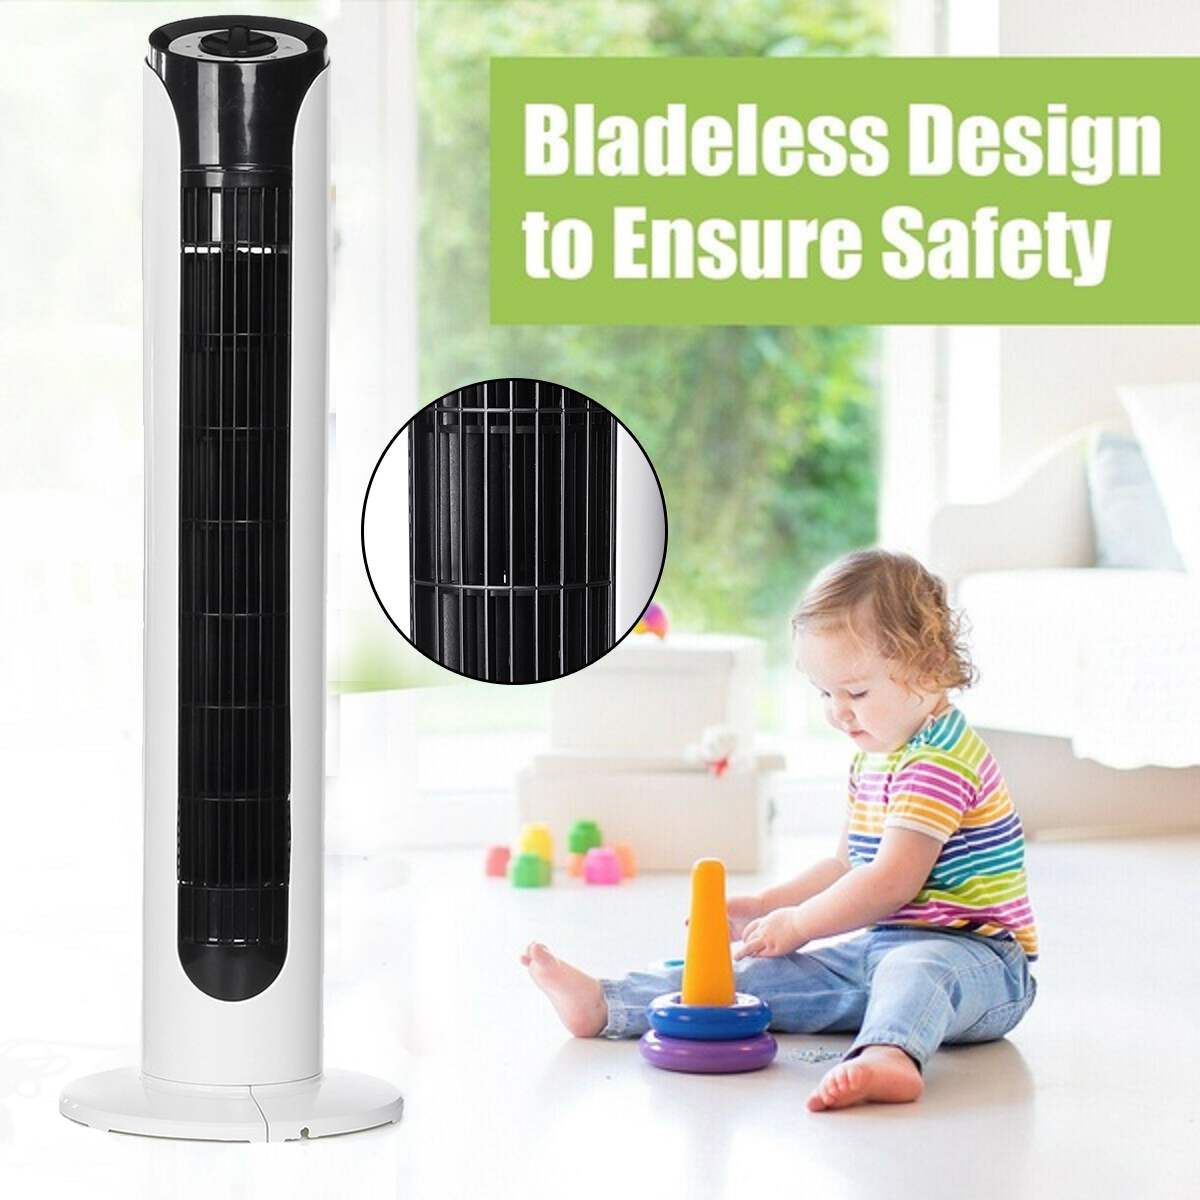 Air Conditioner Fan 80cm Bladeless Electric Air Cooler Cooling Living room BedroomHousehold Air Cooling Fan New Arrival 2019Air Conditioner Fan 80cm Bladeless Electric Air Cooler Cooling Living room BedroomHousehold Air Cooling Fan New Arrival 2019